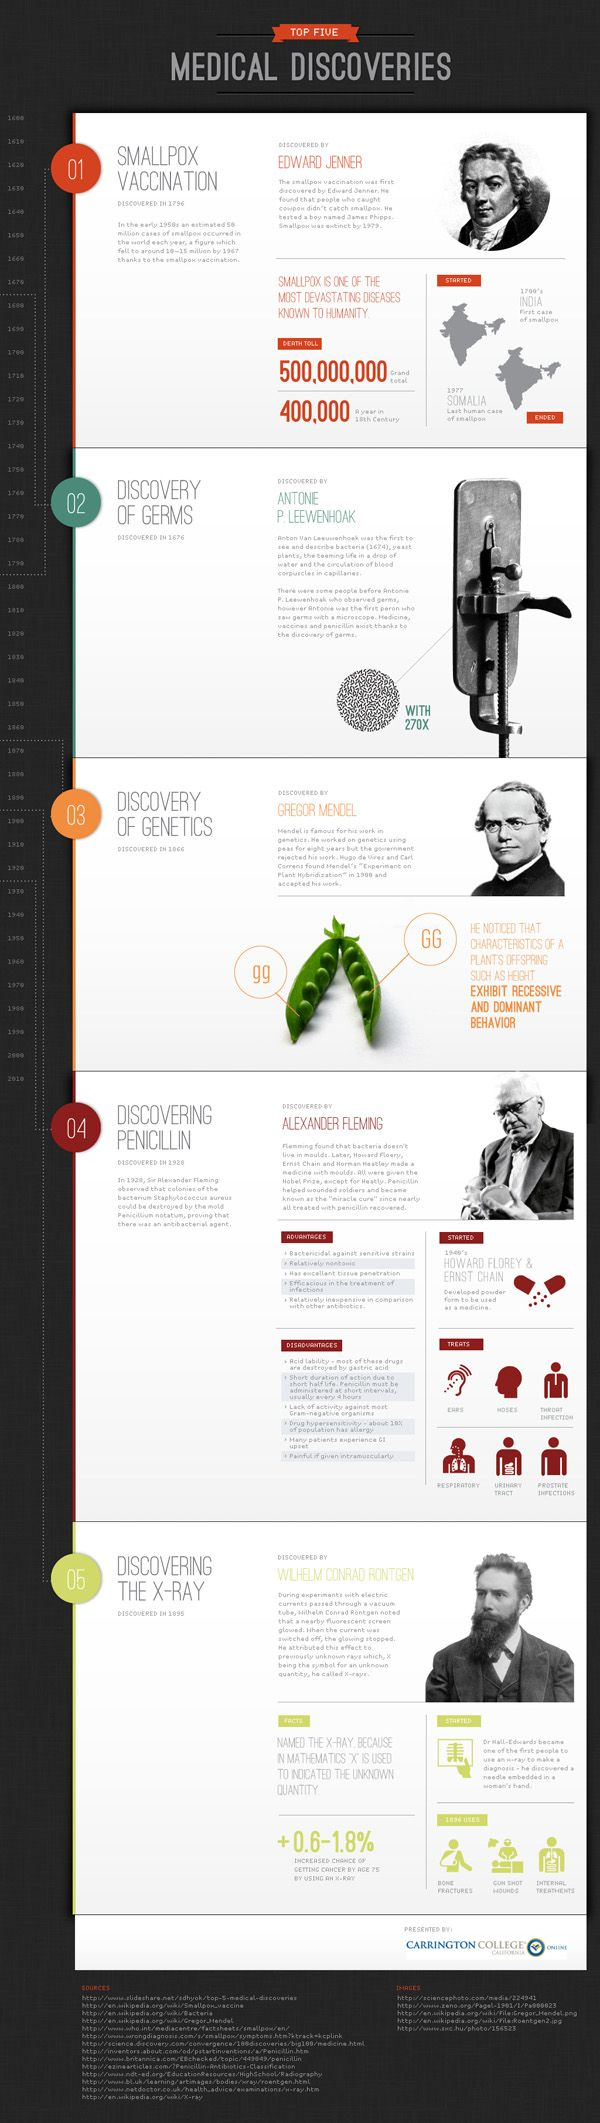 The top 5 medical discoveries in history, with detailed info on each discovery via this infographic from Carrington College.